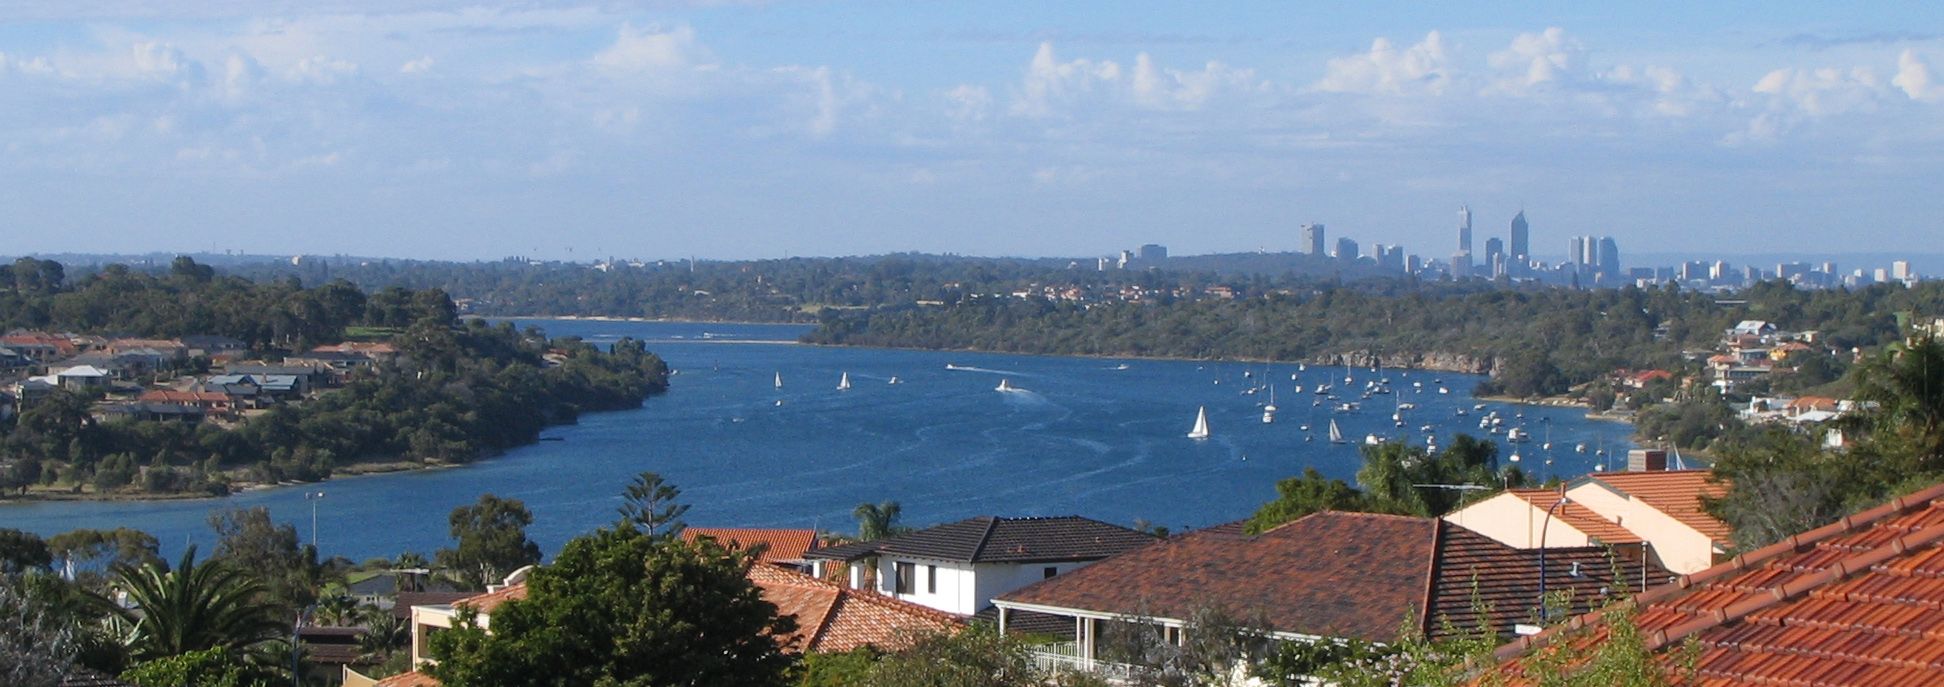 iew from East Fremantle, Western Australia, along Blackwall Reach of the Swan River towards Point Walter, with the Perth skyline in the background. Photo taken on April 10, 2004.